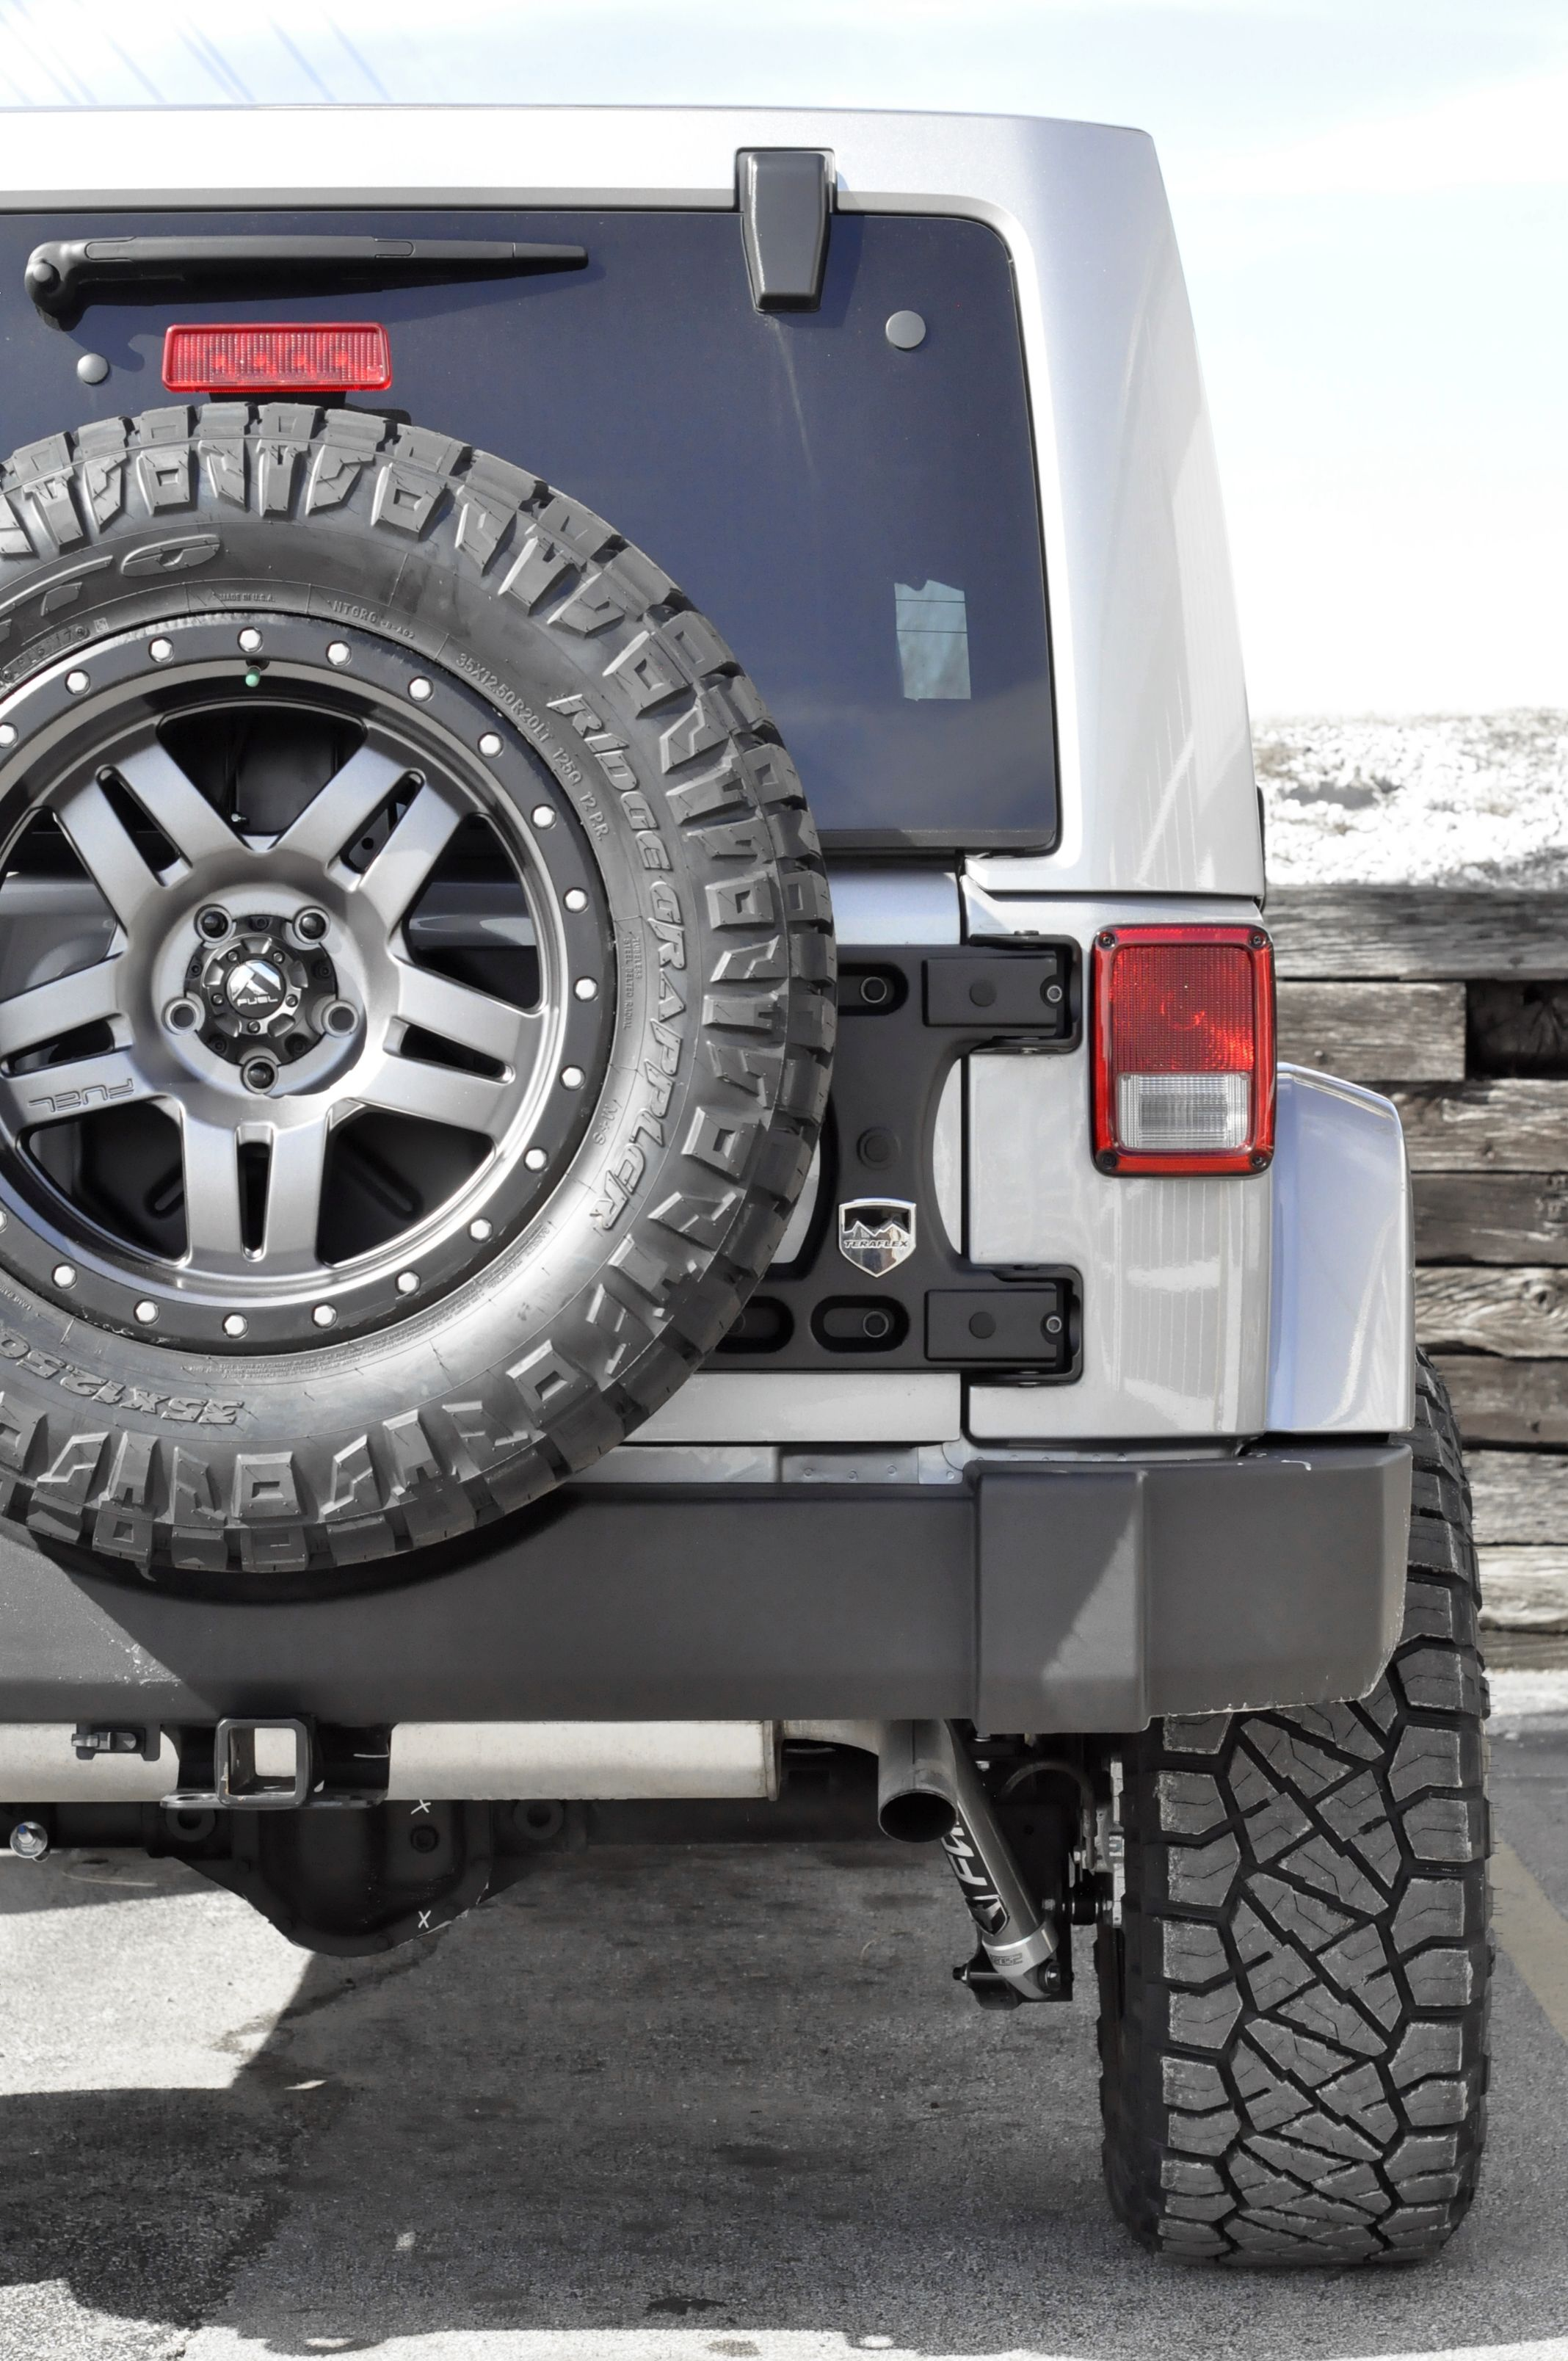 The Rugged Beauty Of A Jeep Wrangler Axleboy Added A 2 5 Inch